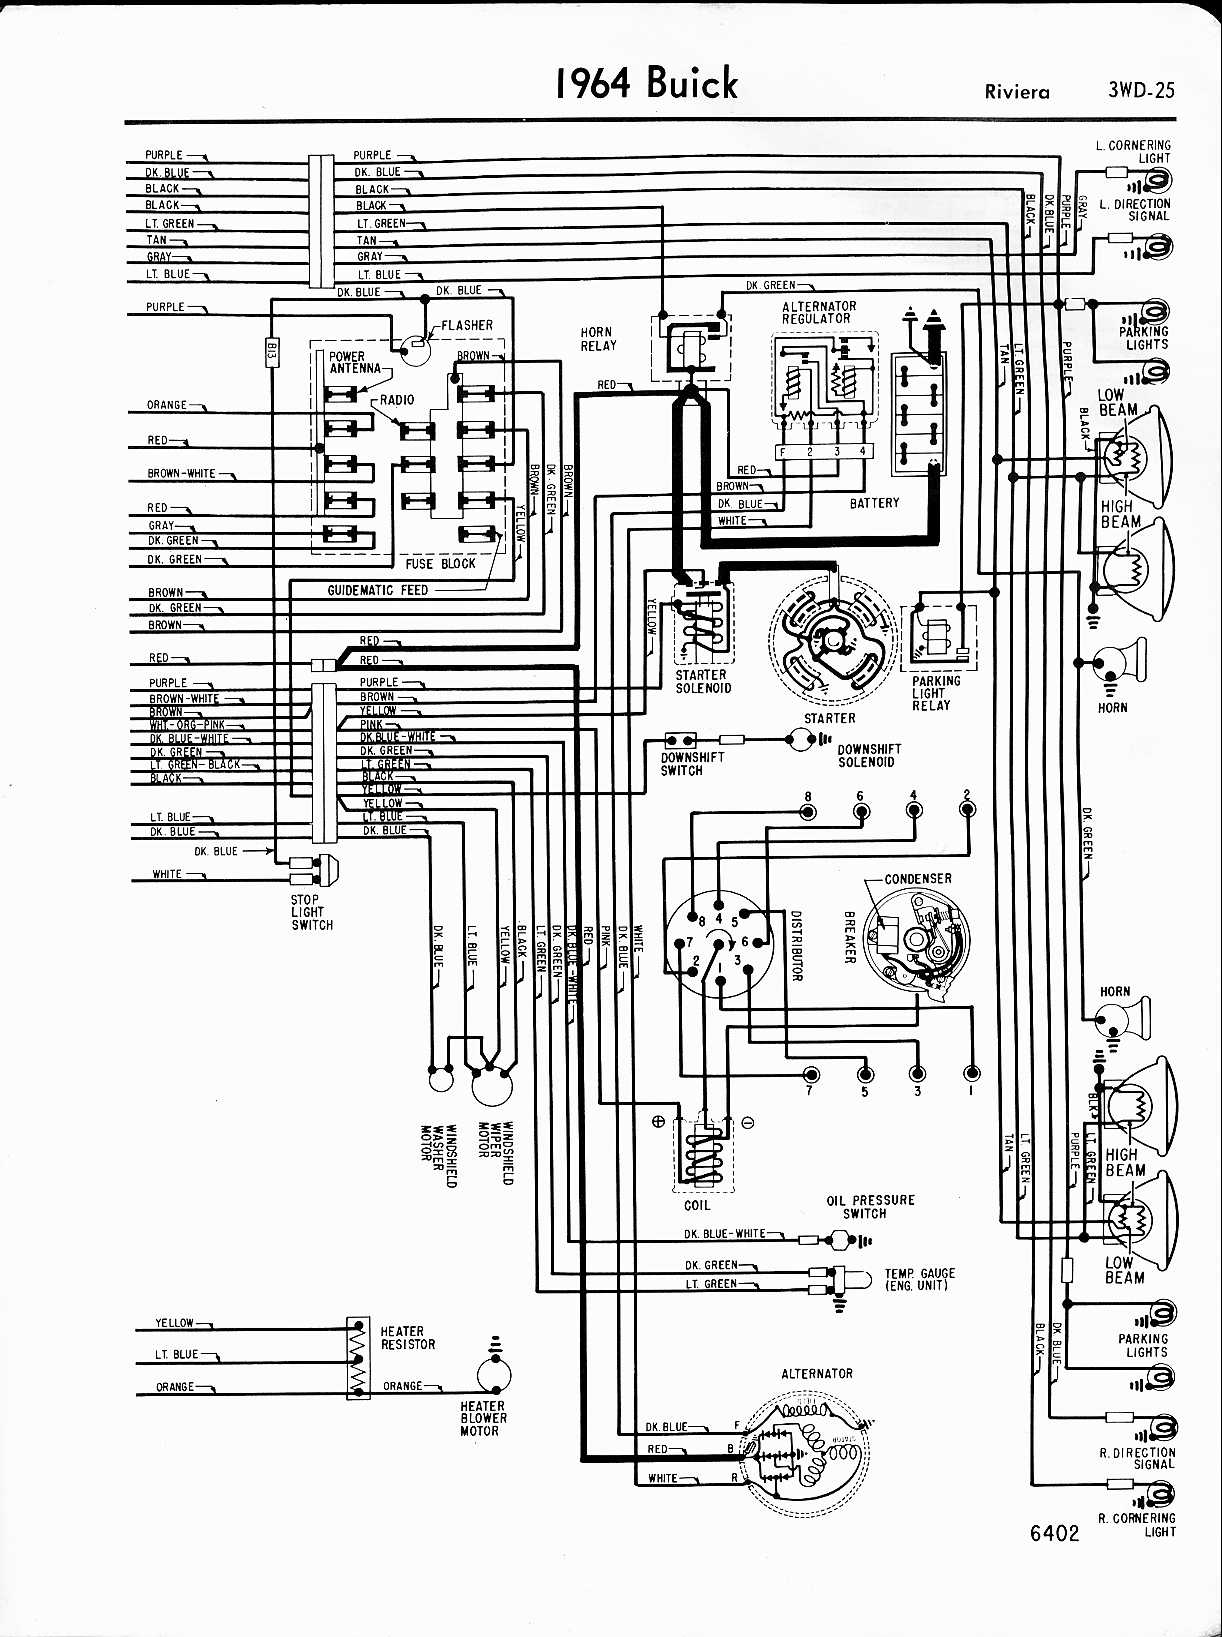 65 buick wiring diagram wiring diagram 1965 buick riviera wiring harness diagram car dodge charger wiring buick riviera #5